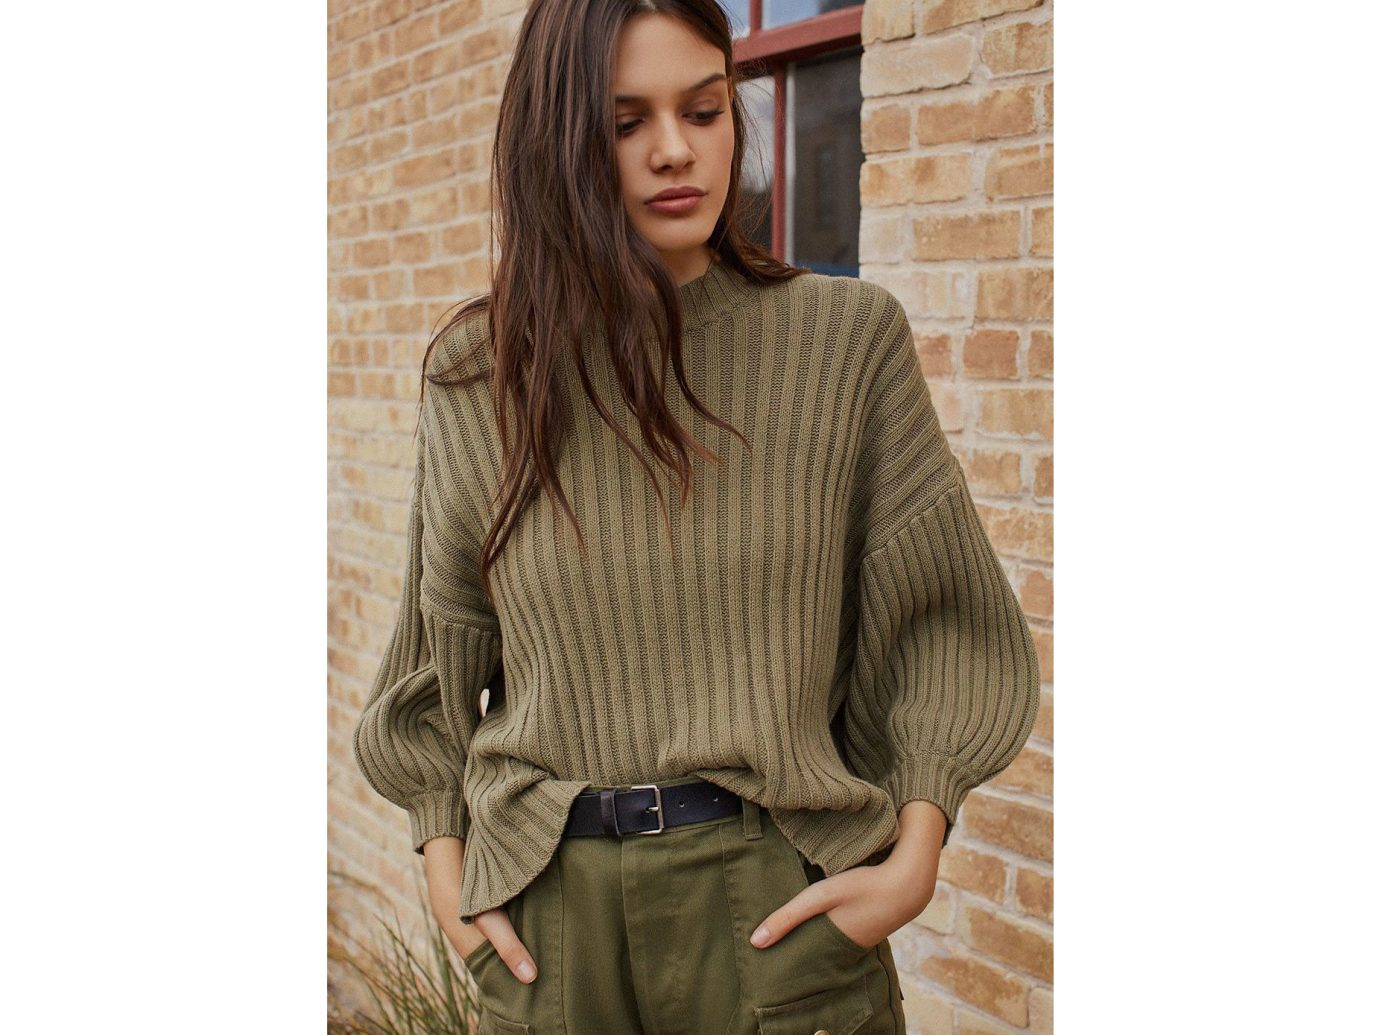 City NYC Style + Design Travel Shop person sweater woolen sleeve shoulder neck outerwear brick beige poncho wool knitting top